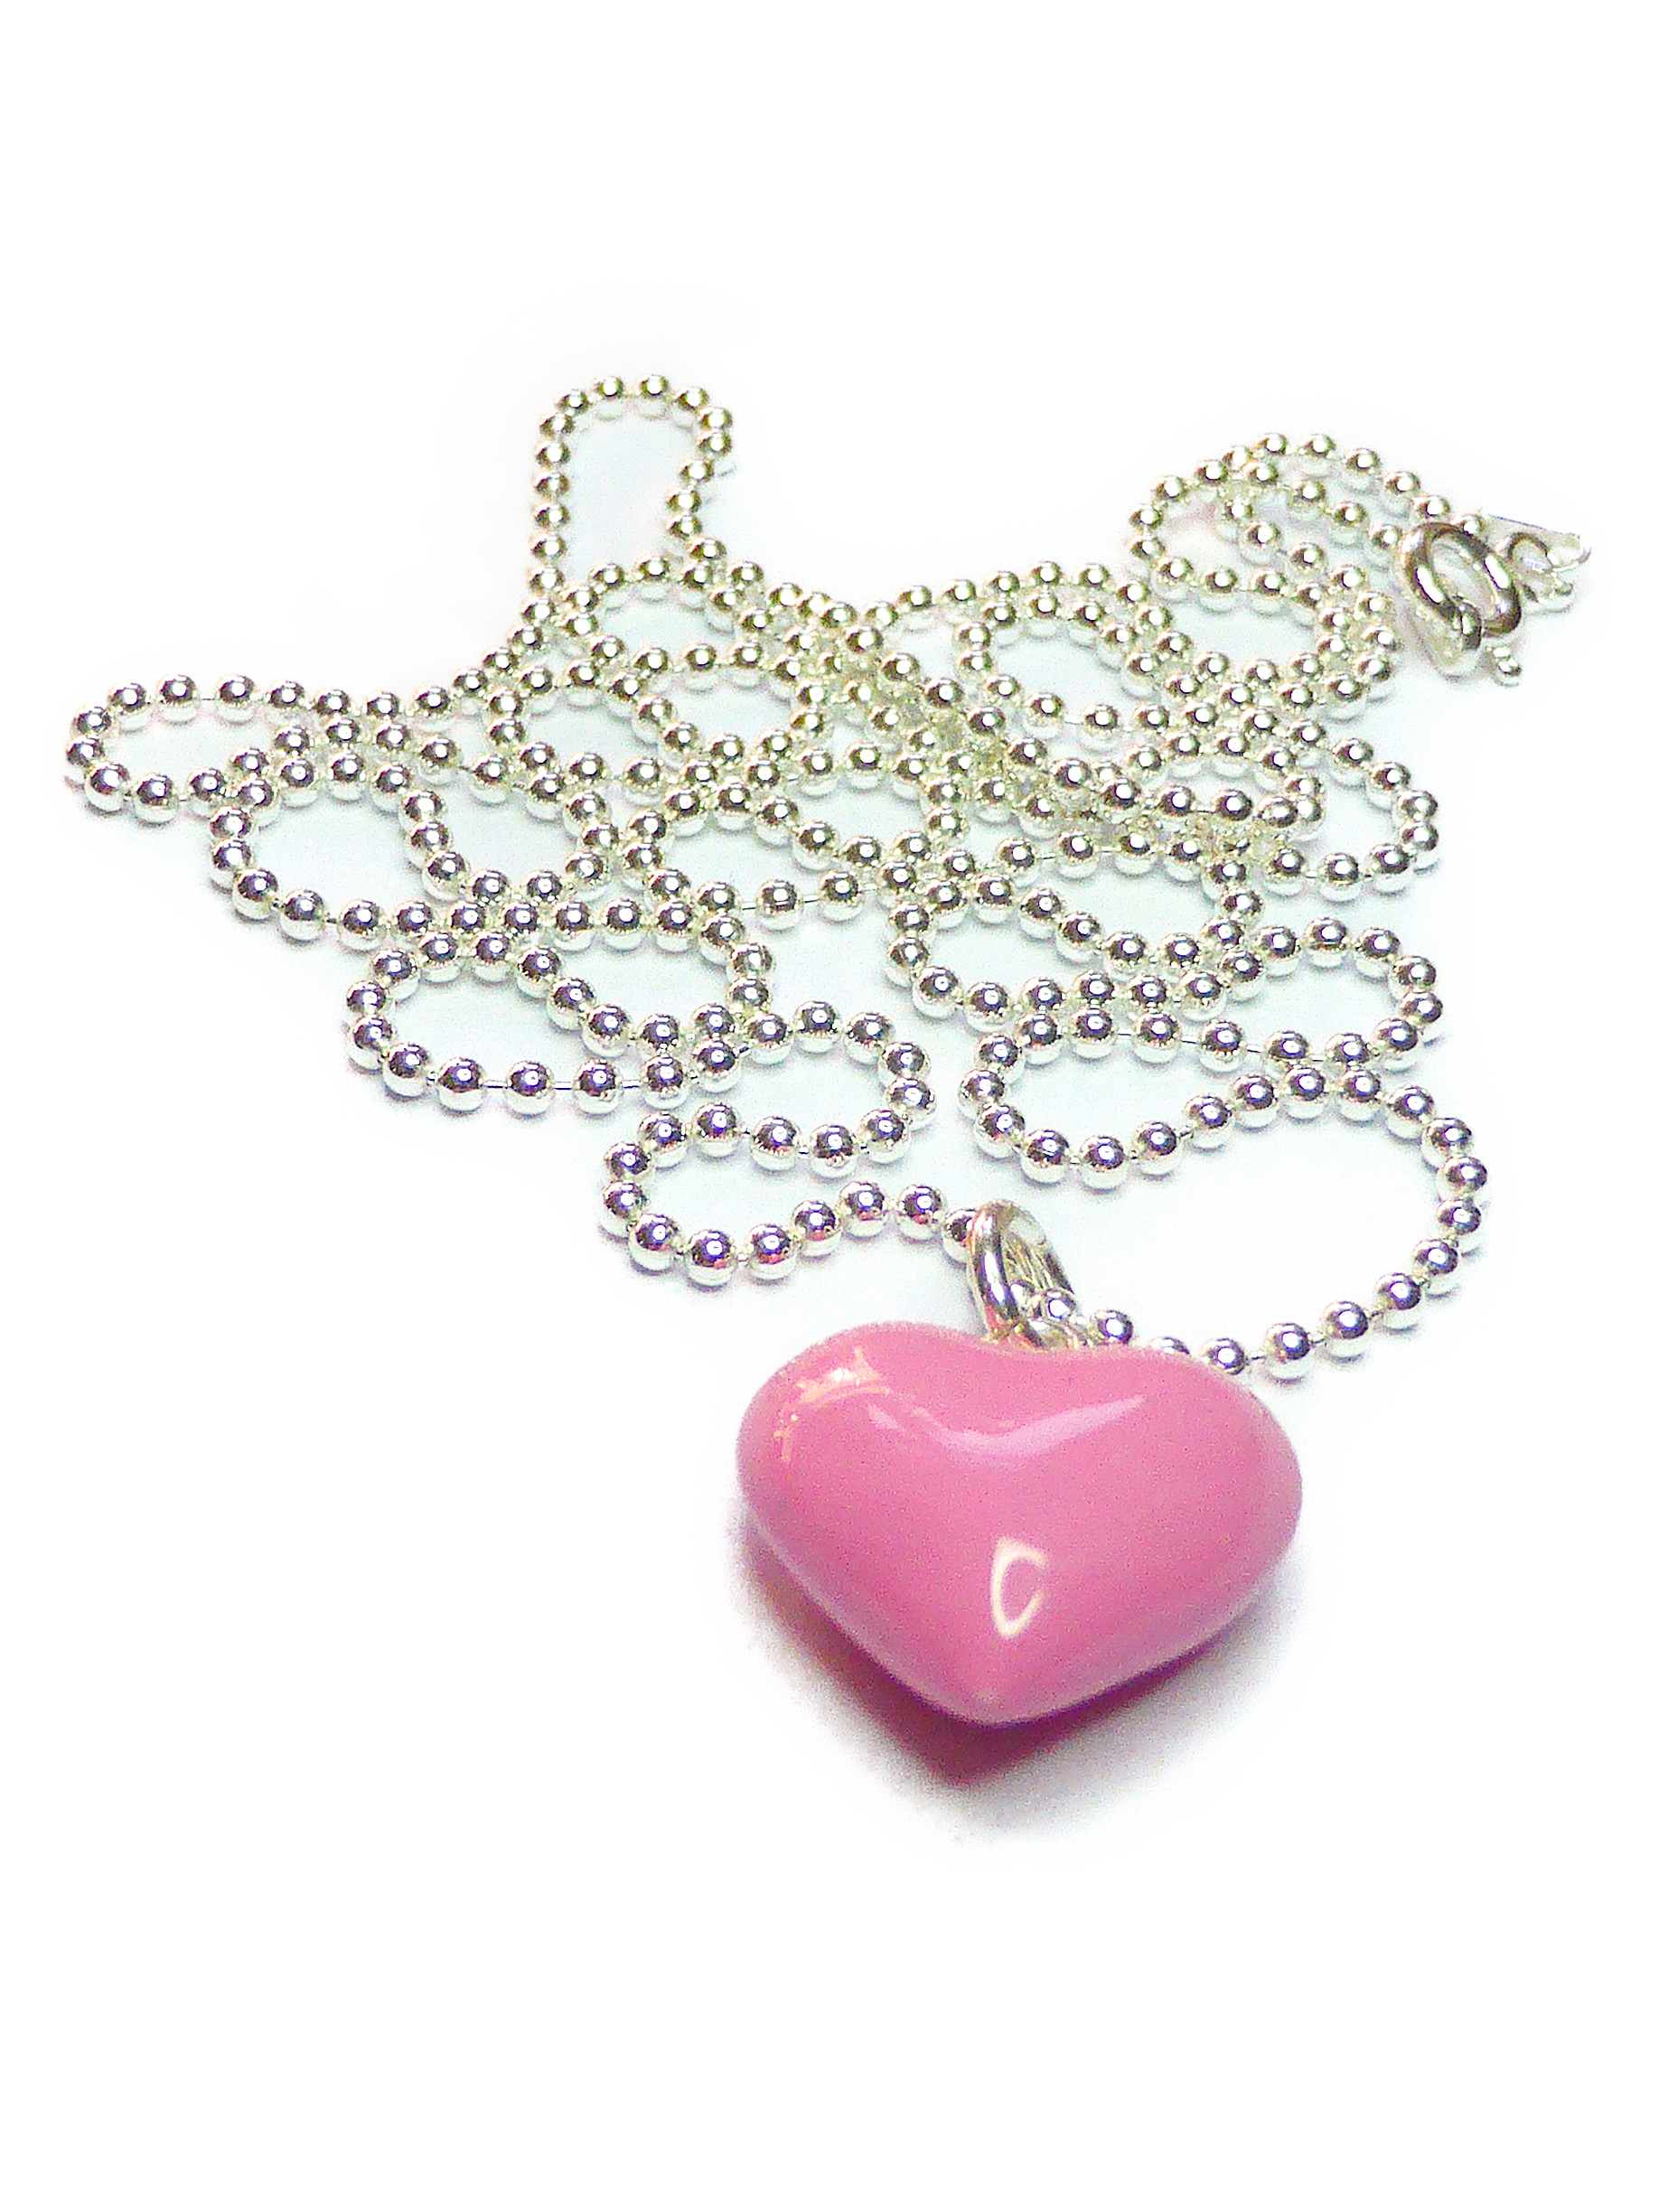 Ball Chain Pendant with Pink Puffed Heart from Jacy & Jools Cheshire